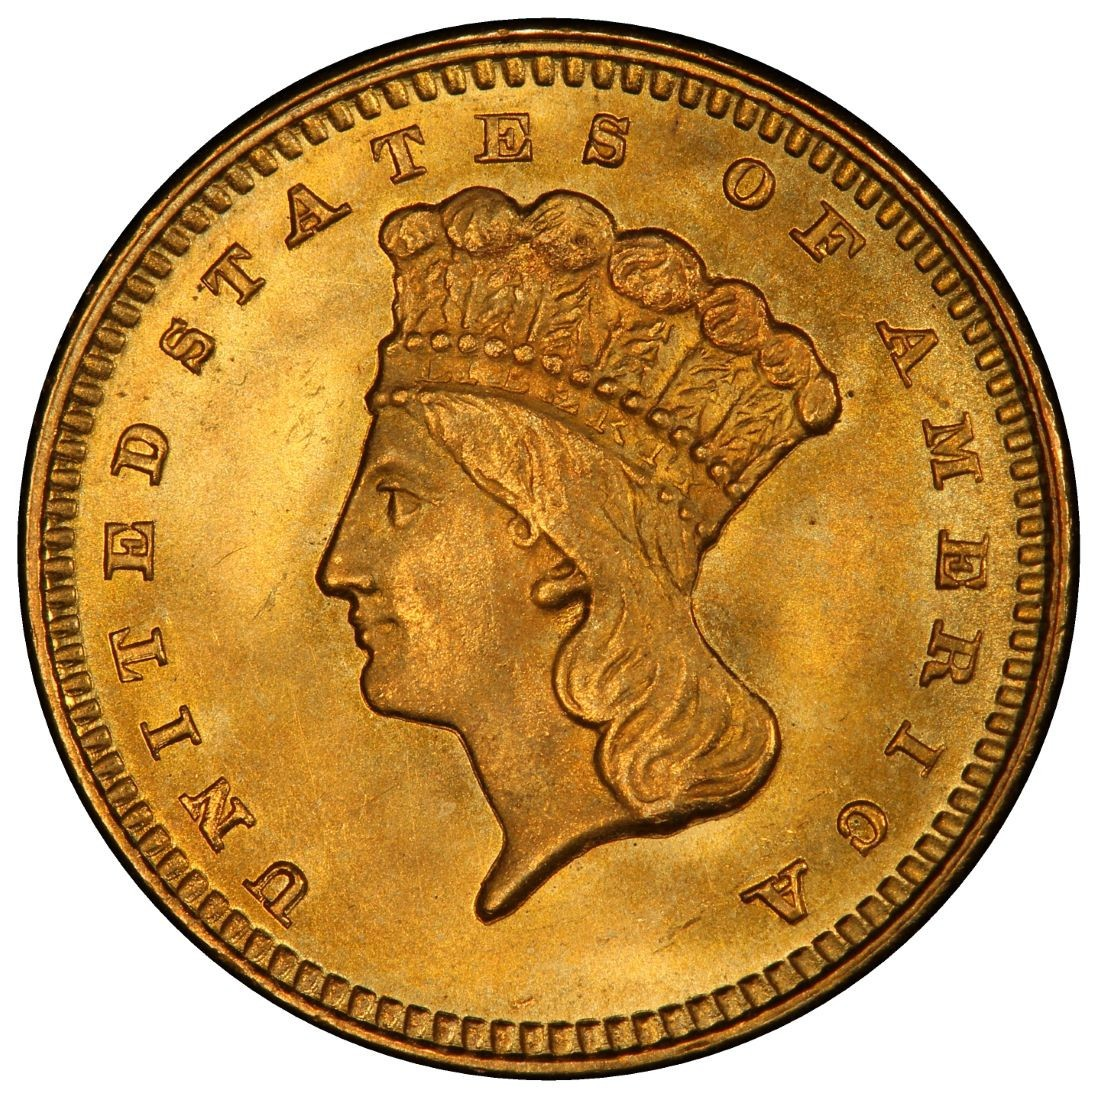 1873 Large Head Indian Princess Gold Dollar Values And